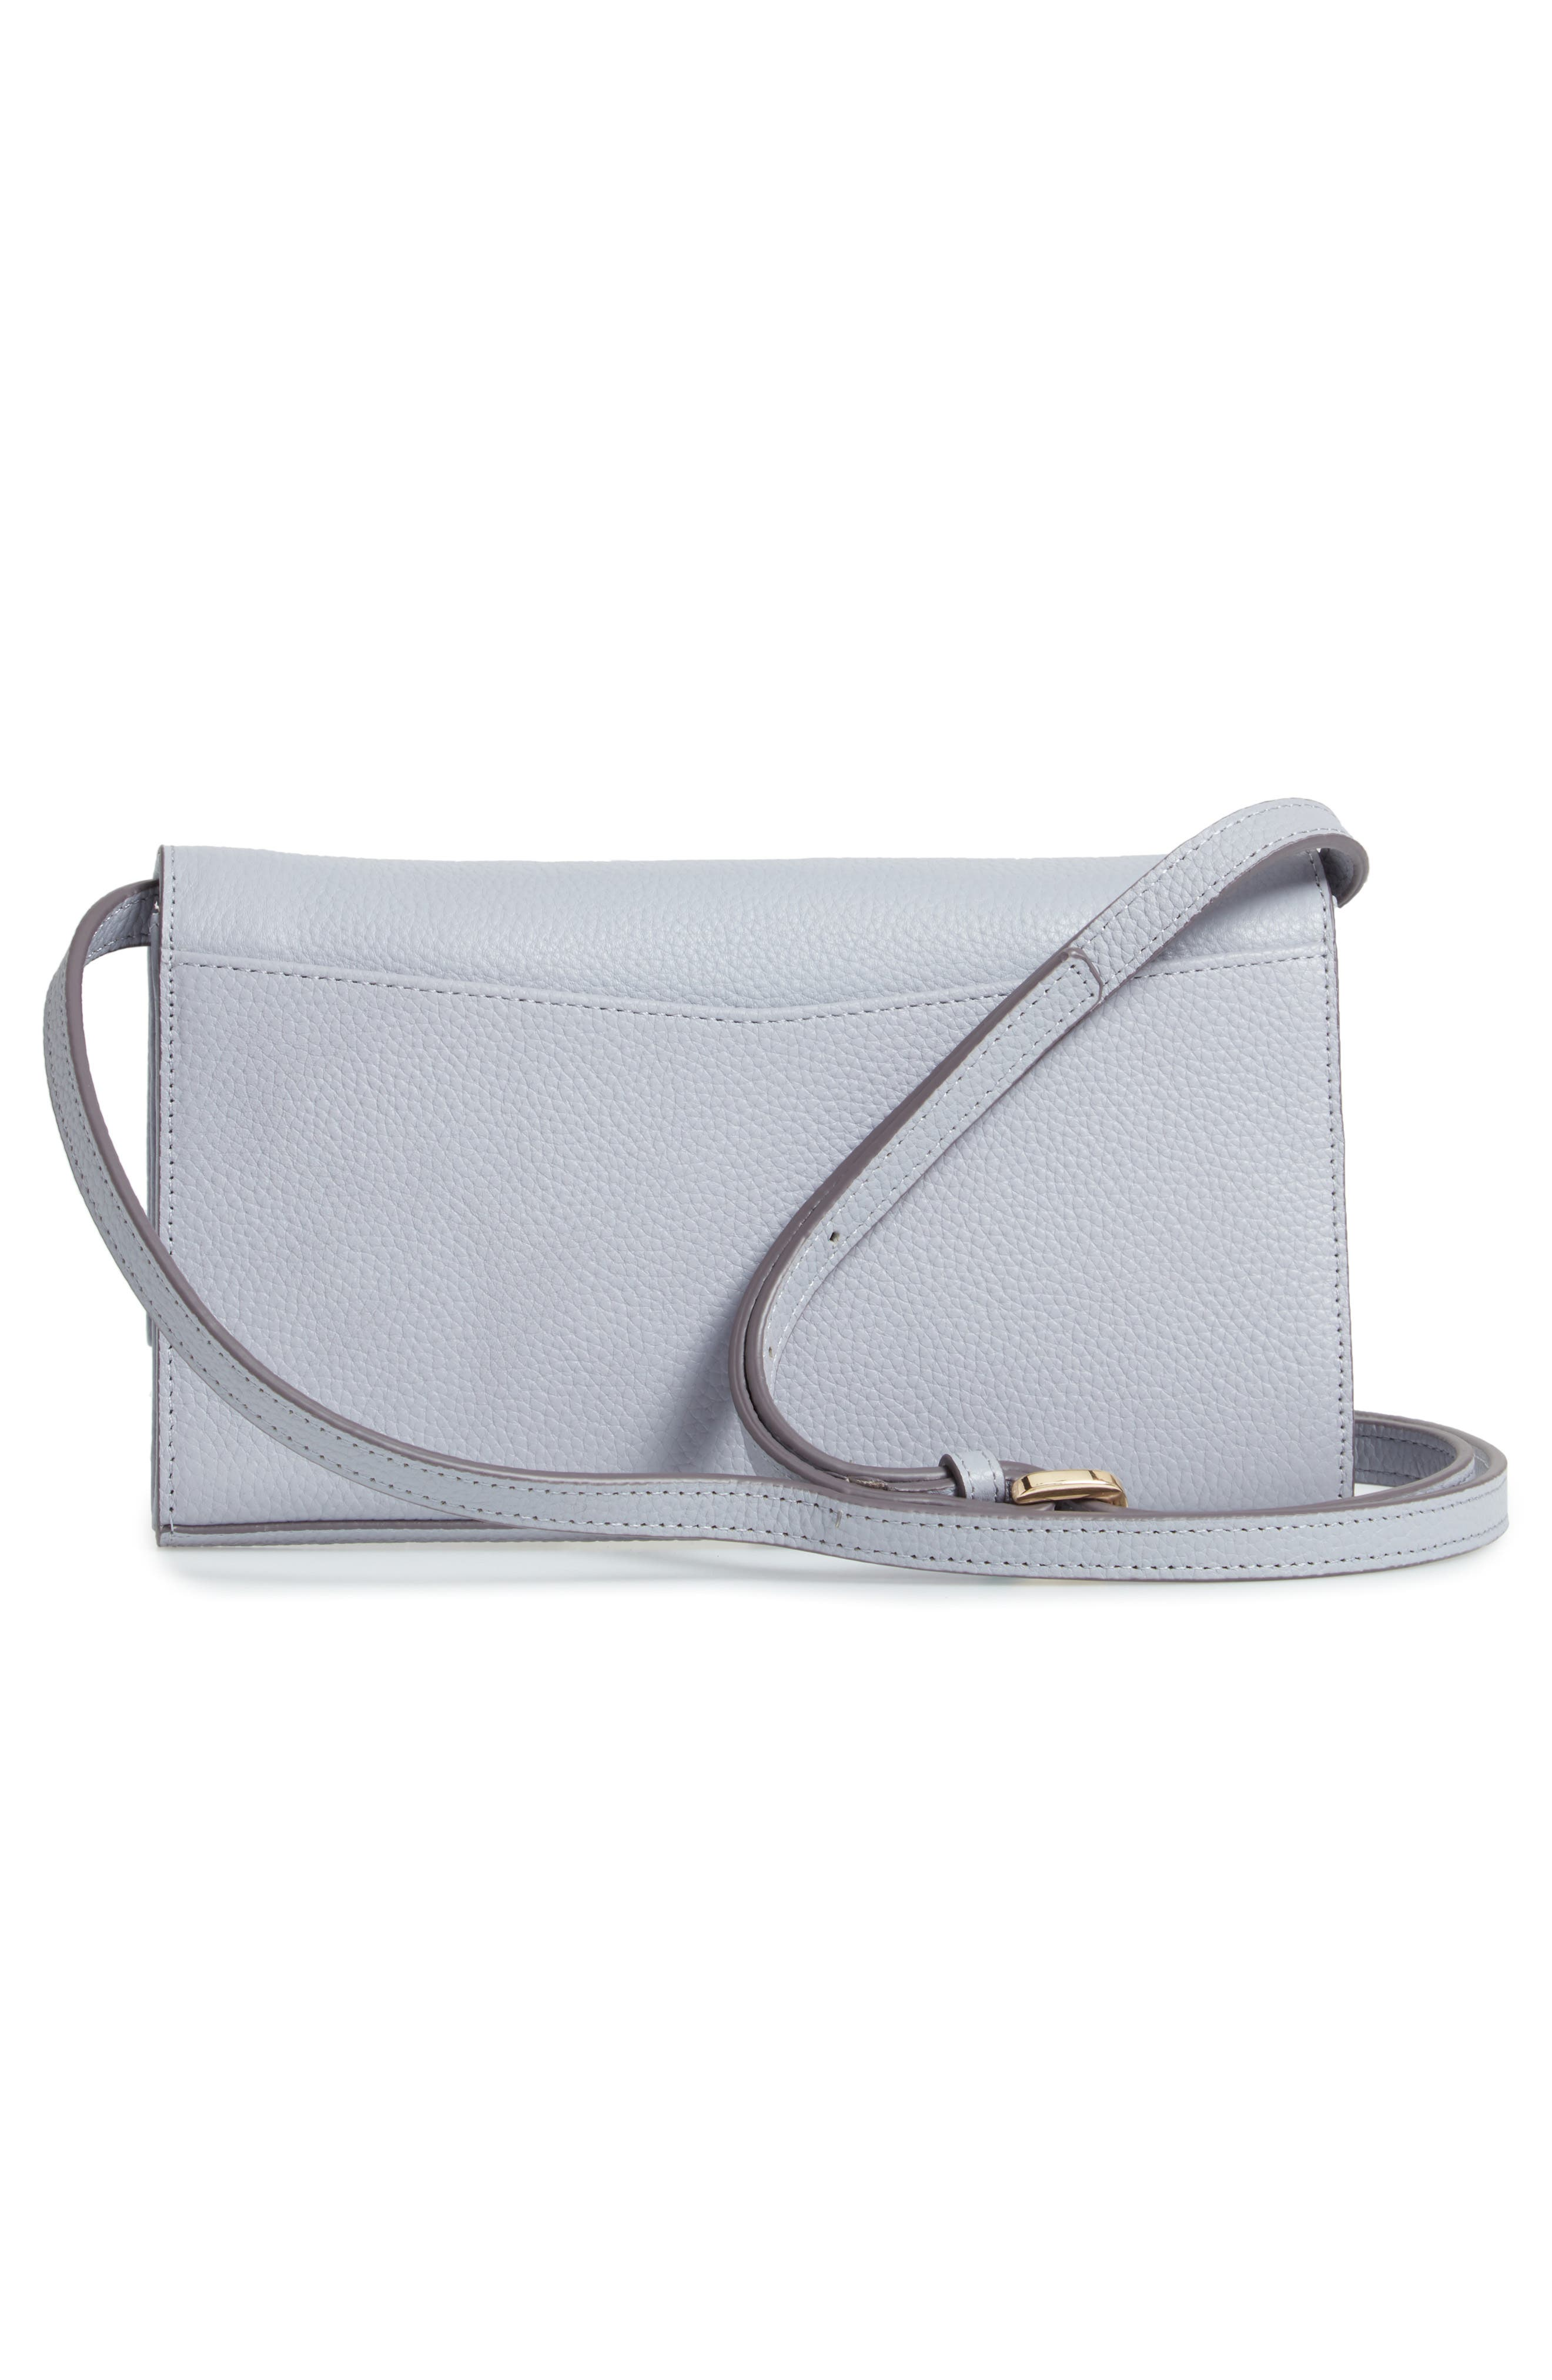 Leather Wallet on a Strap,                             Alternate thumbnail 3, color,                             GREY LILAC